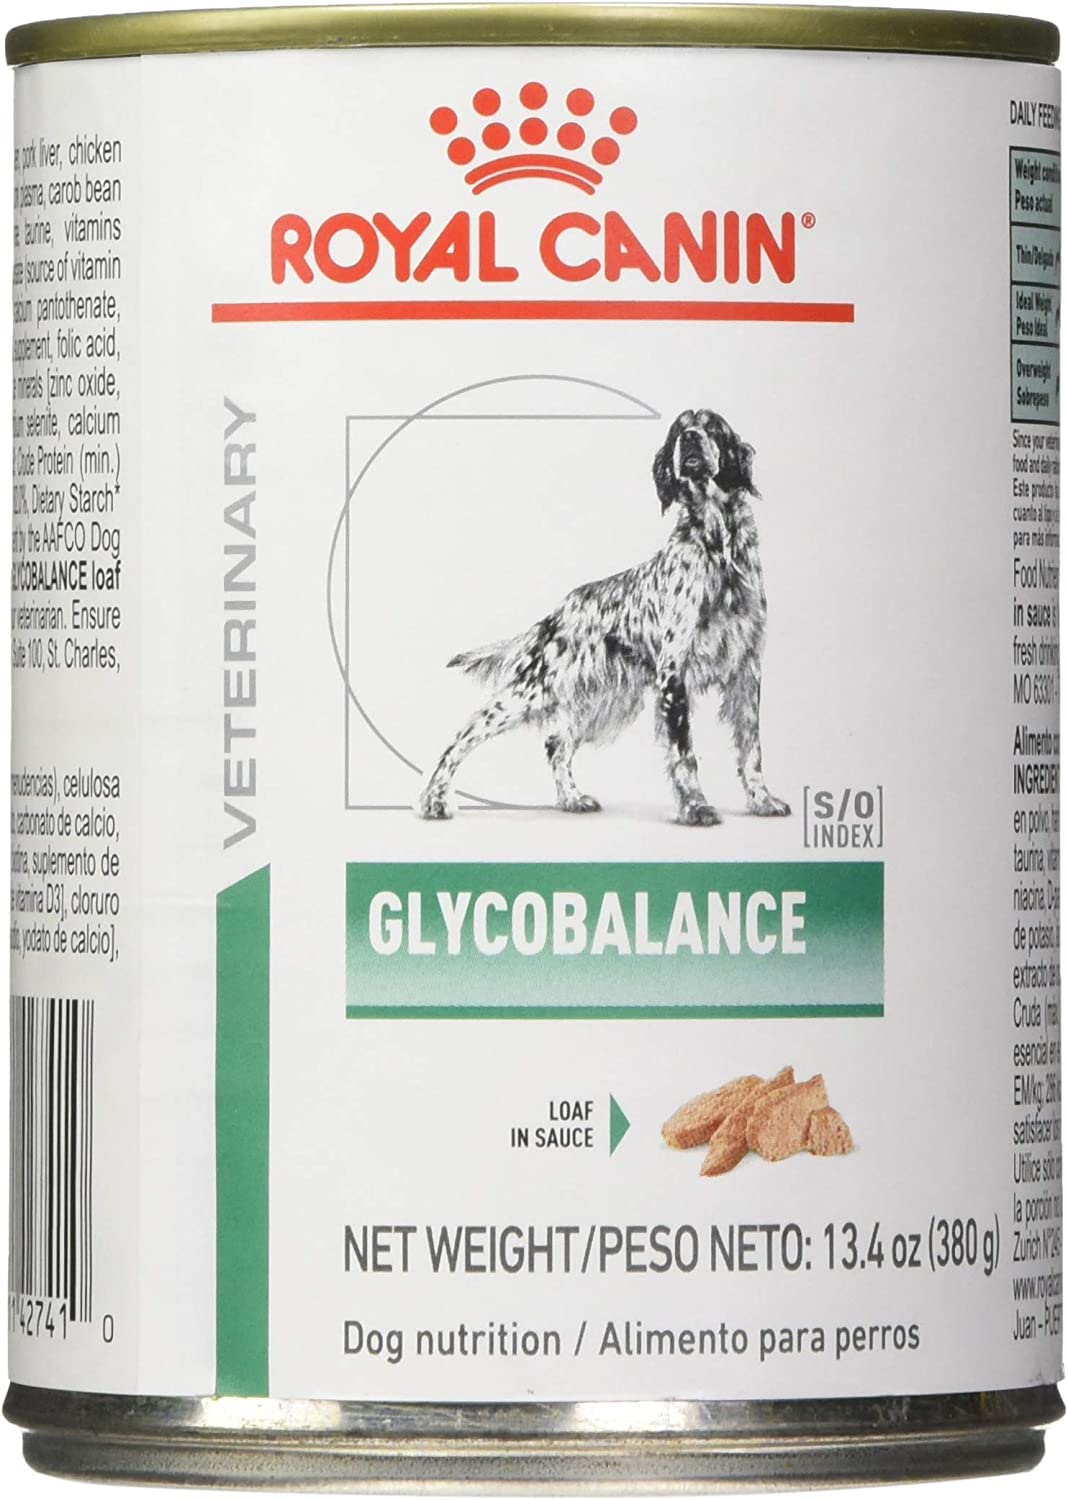 Royal Canin Veterinary Diet Canine Glycobalance In Gel Canned Dog Food, 13.4 oz, Pack of 24